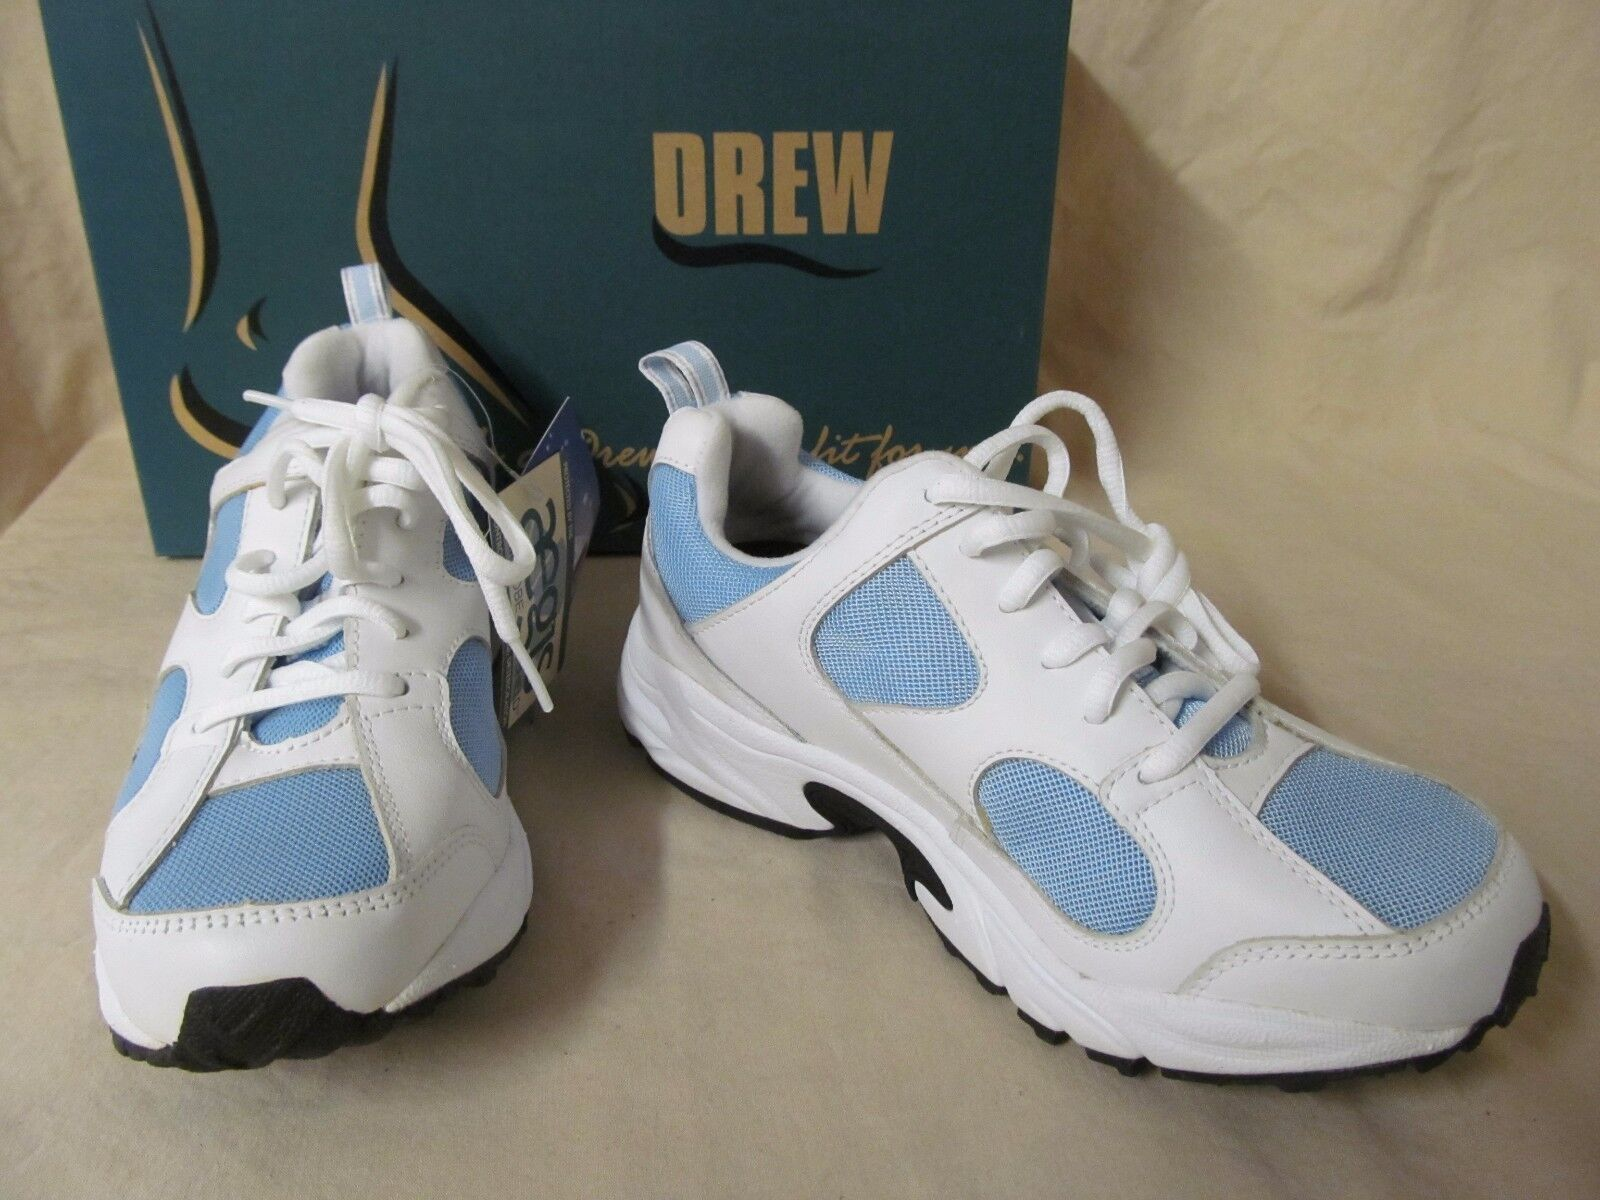 NWD Drew 6.5 M Flash White & bluee Leather Lace Up Athletic shoes Sneakers A